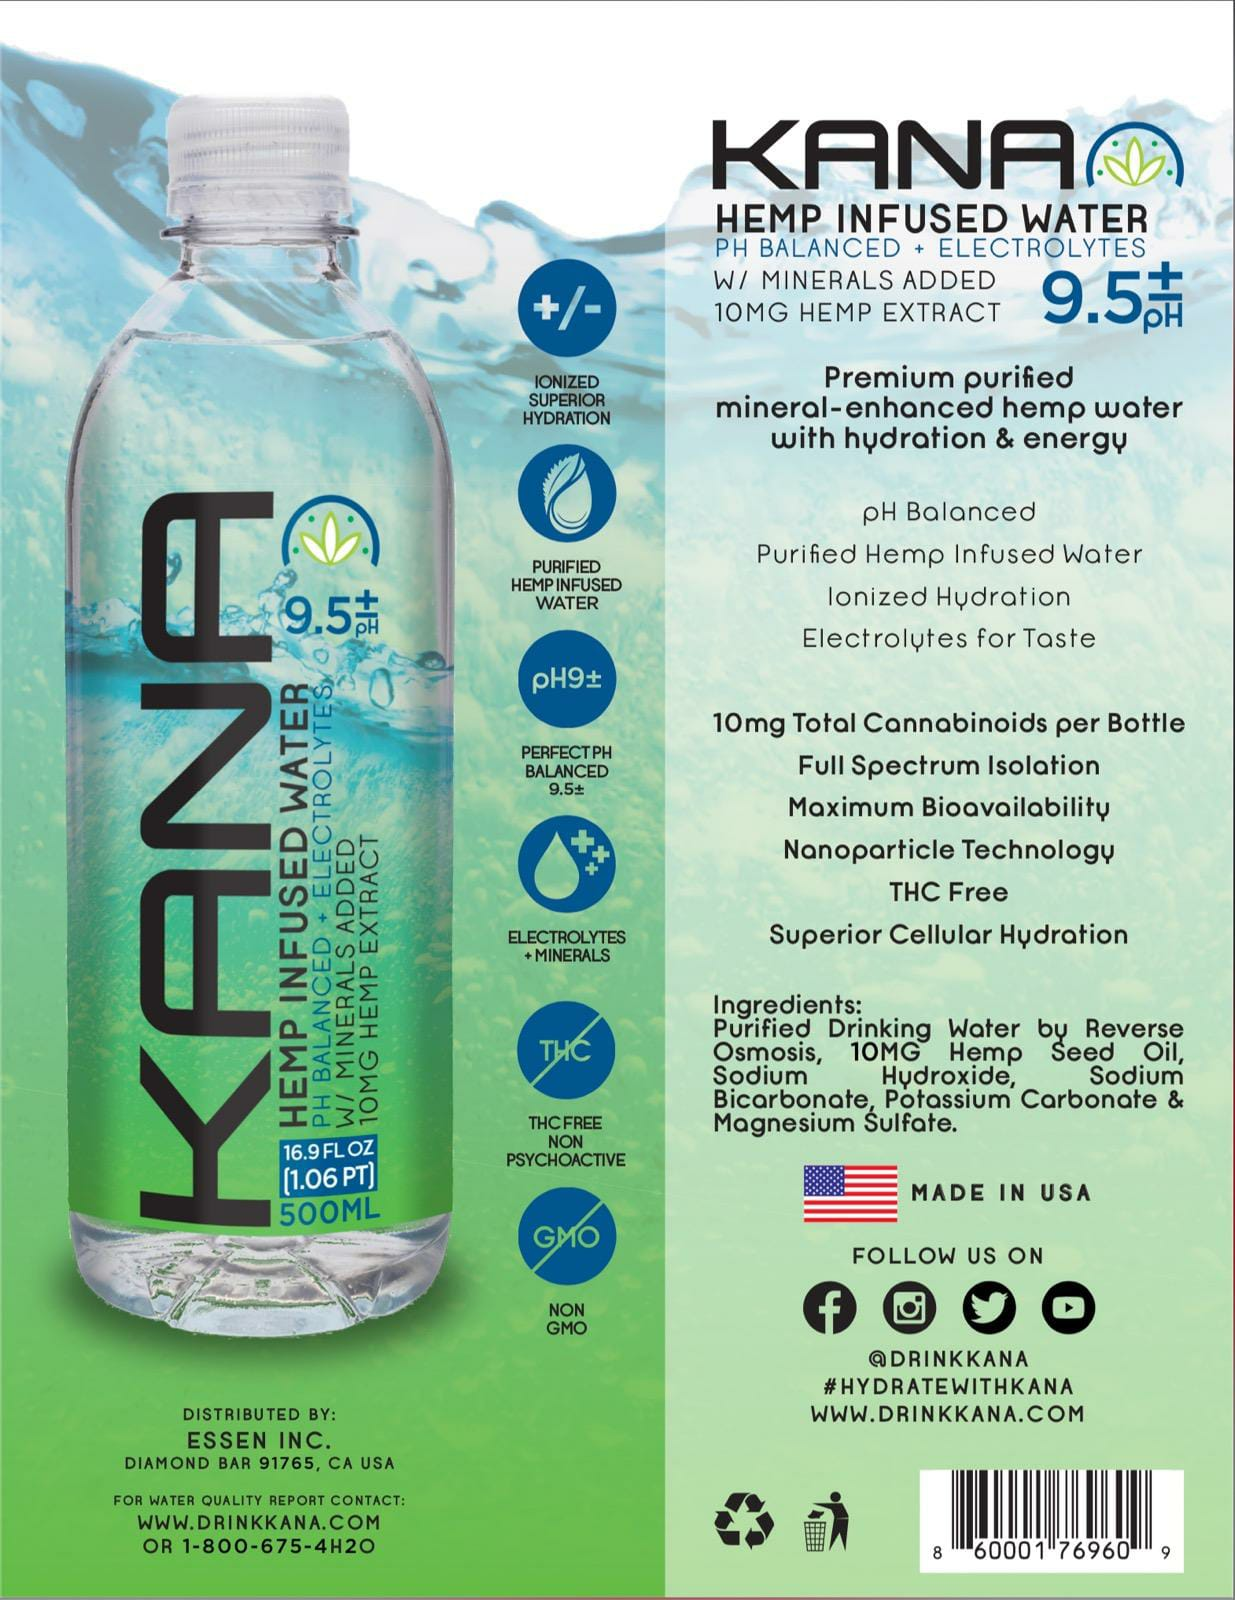 Drink Kana announces the launch of Kana Hemp water on Amazon